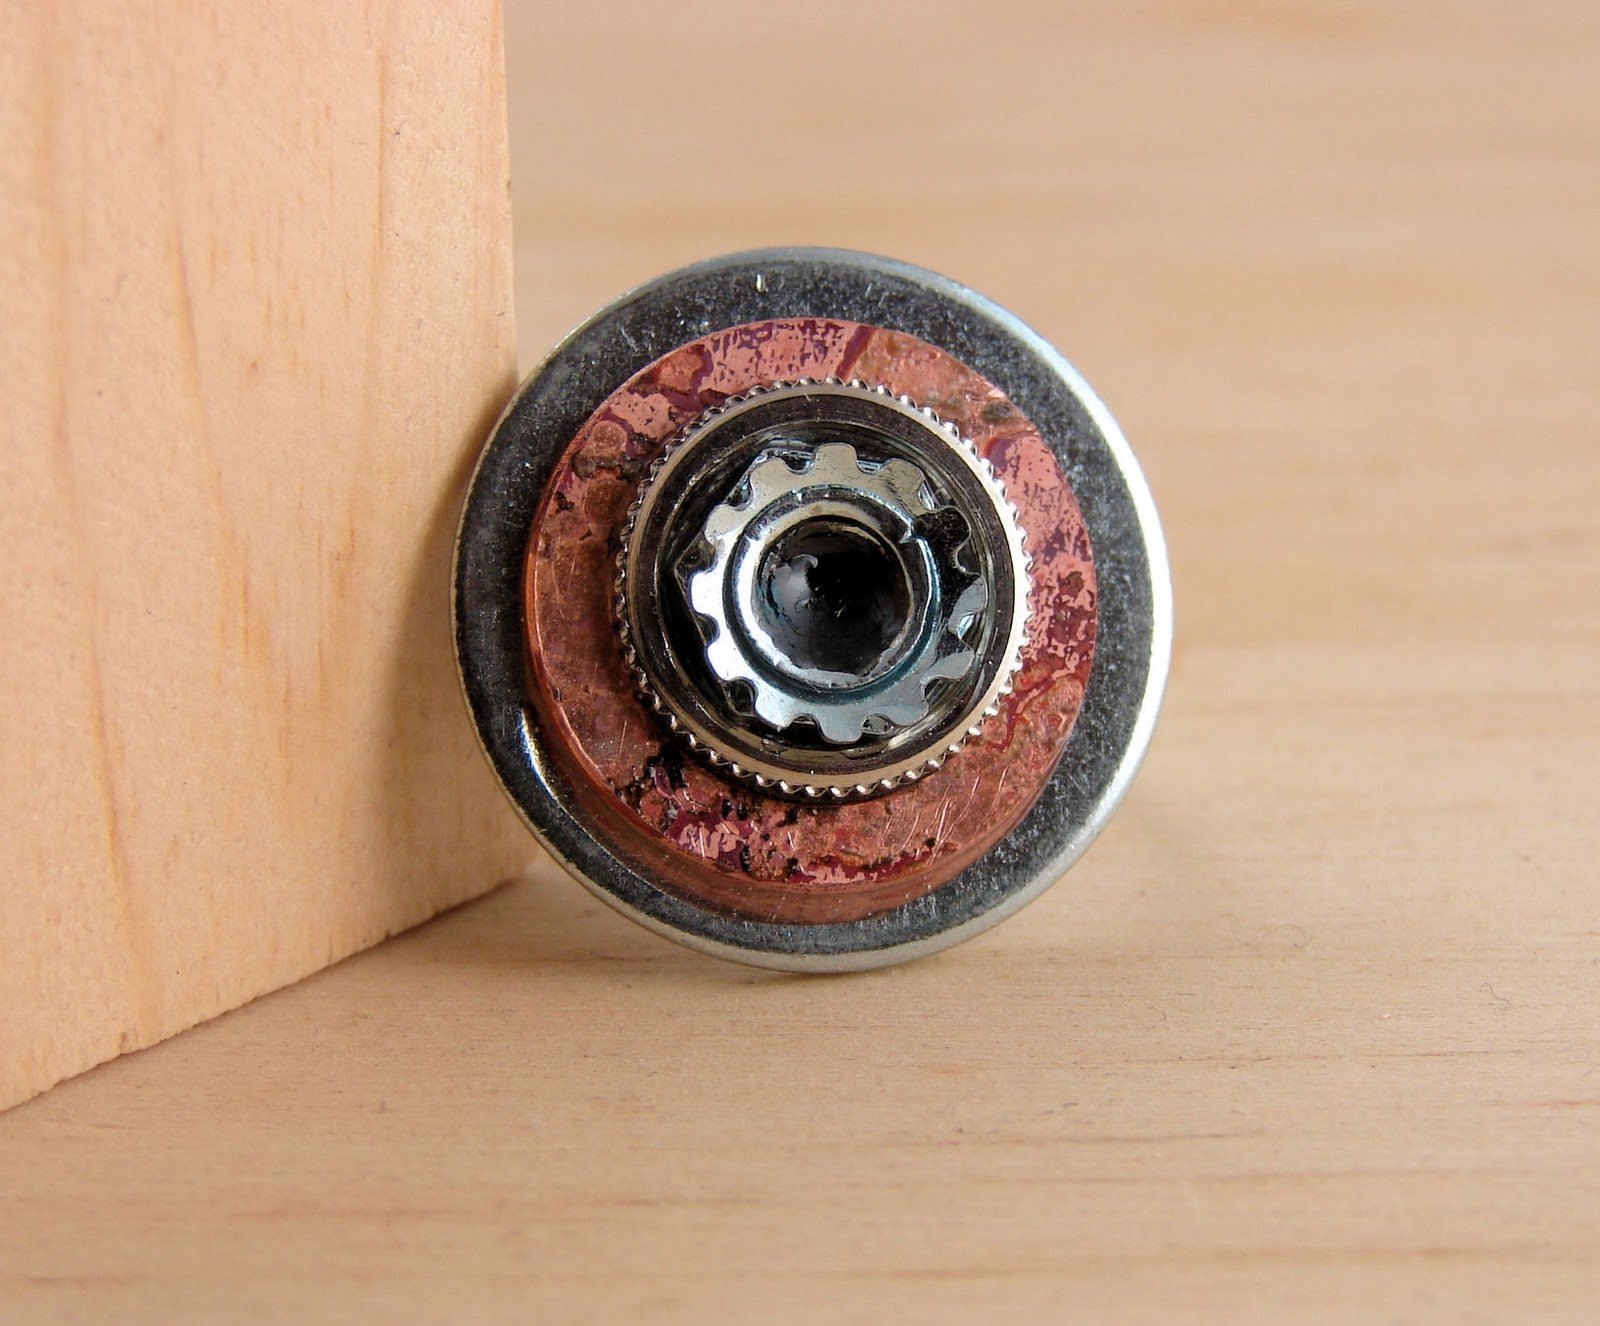 Copper Lock Washer : Everyday inspired bursts of inspiration